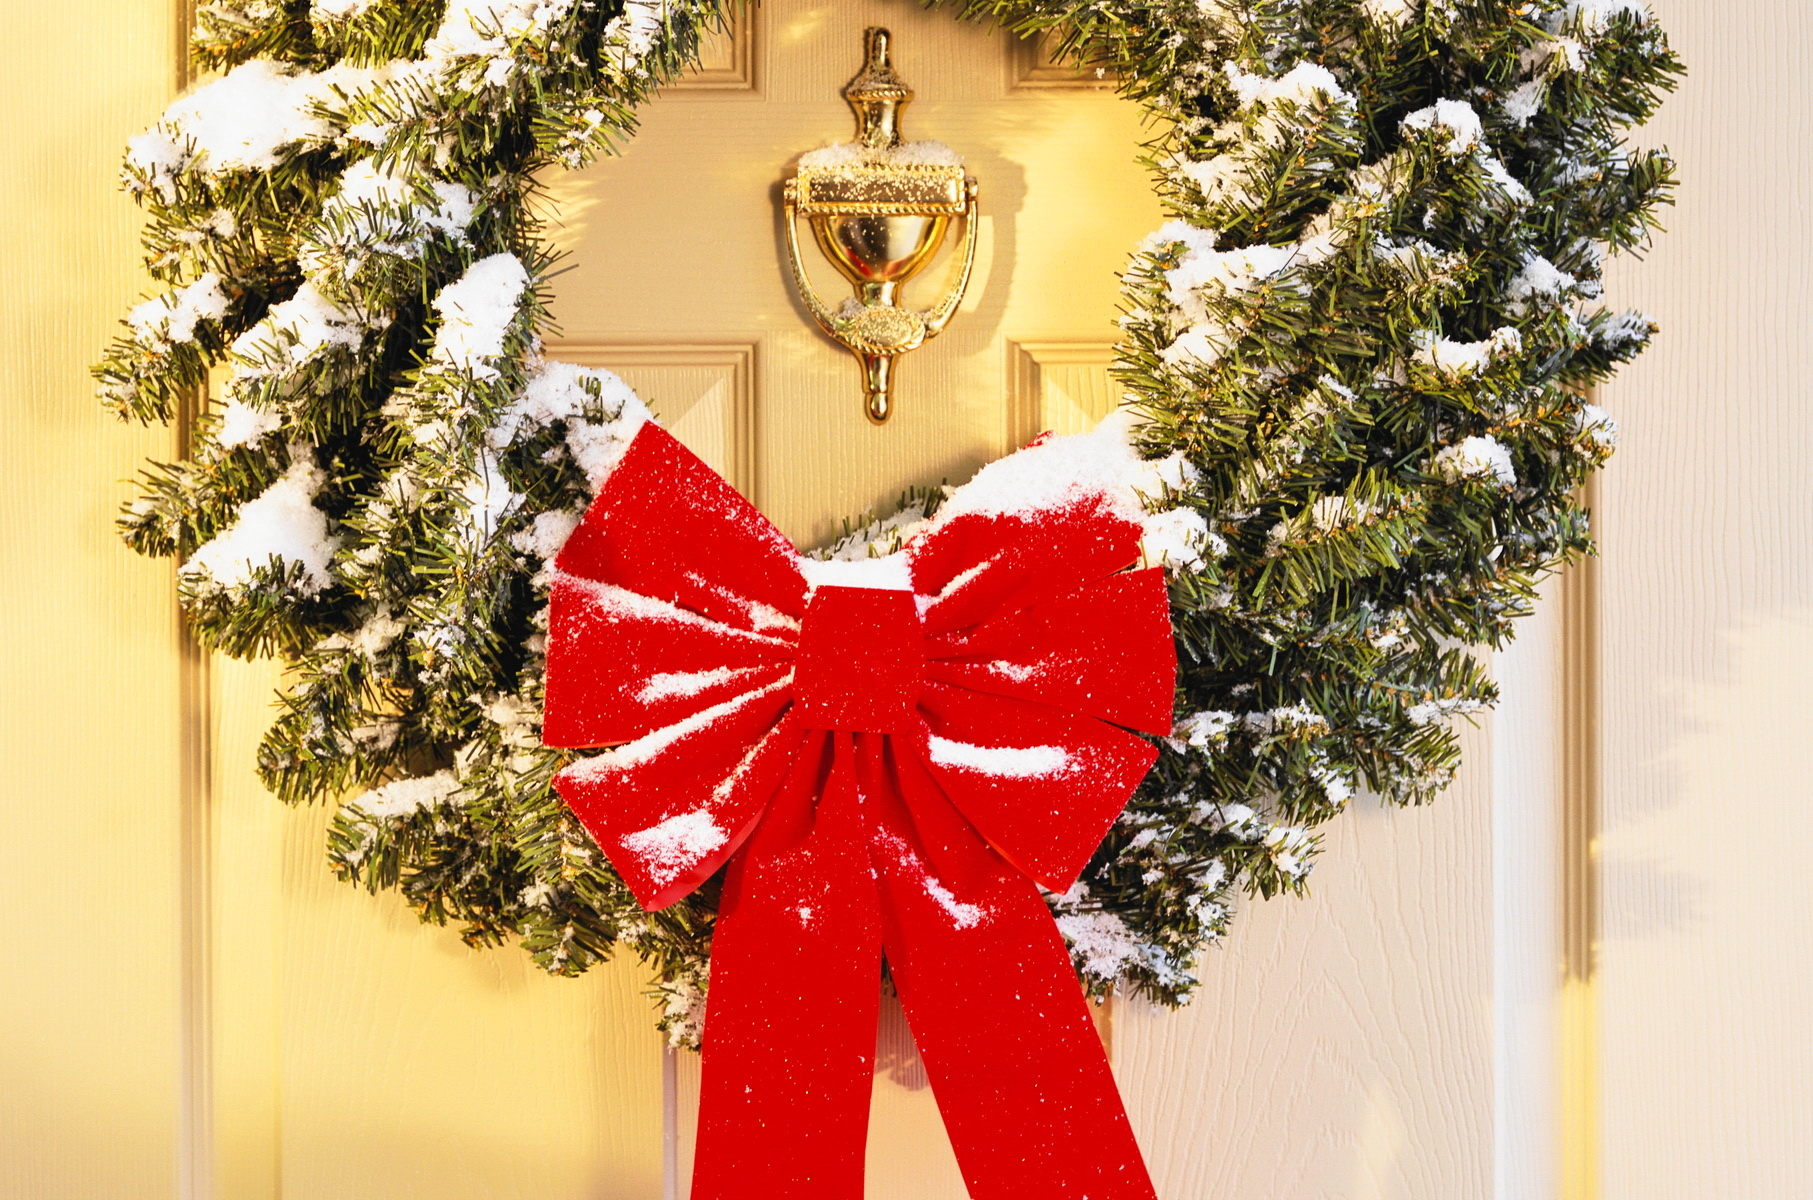 Christmas Wreath Wallpaper and Background Image ...